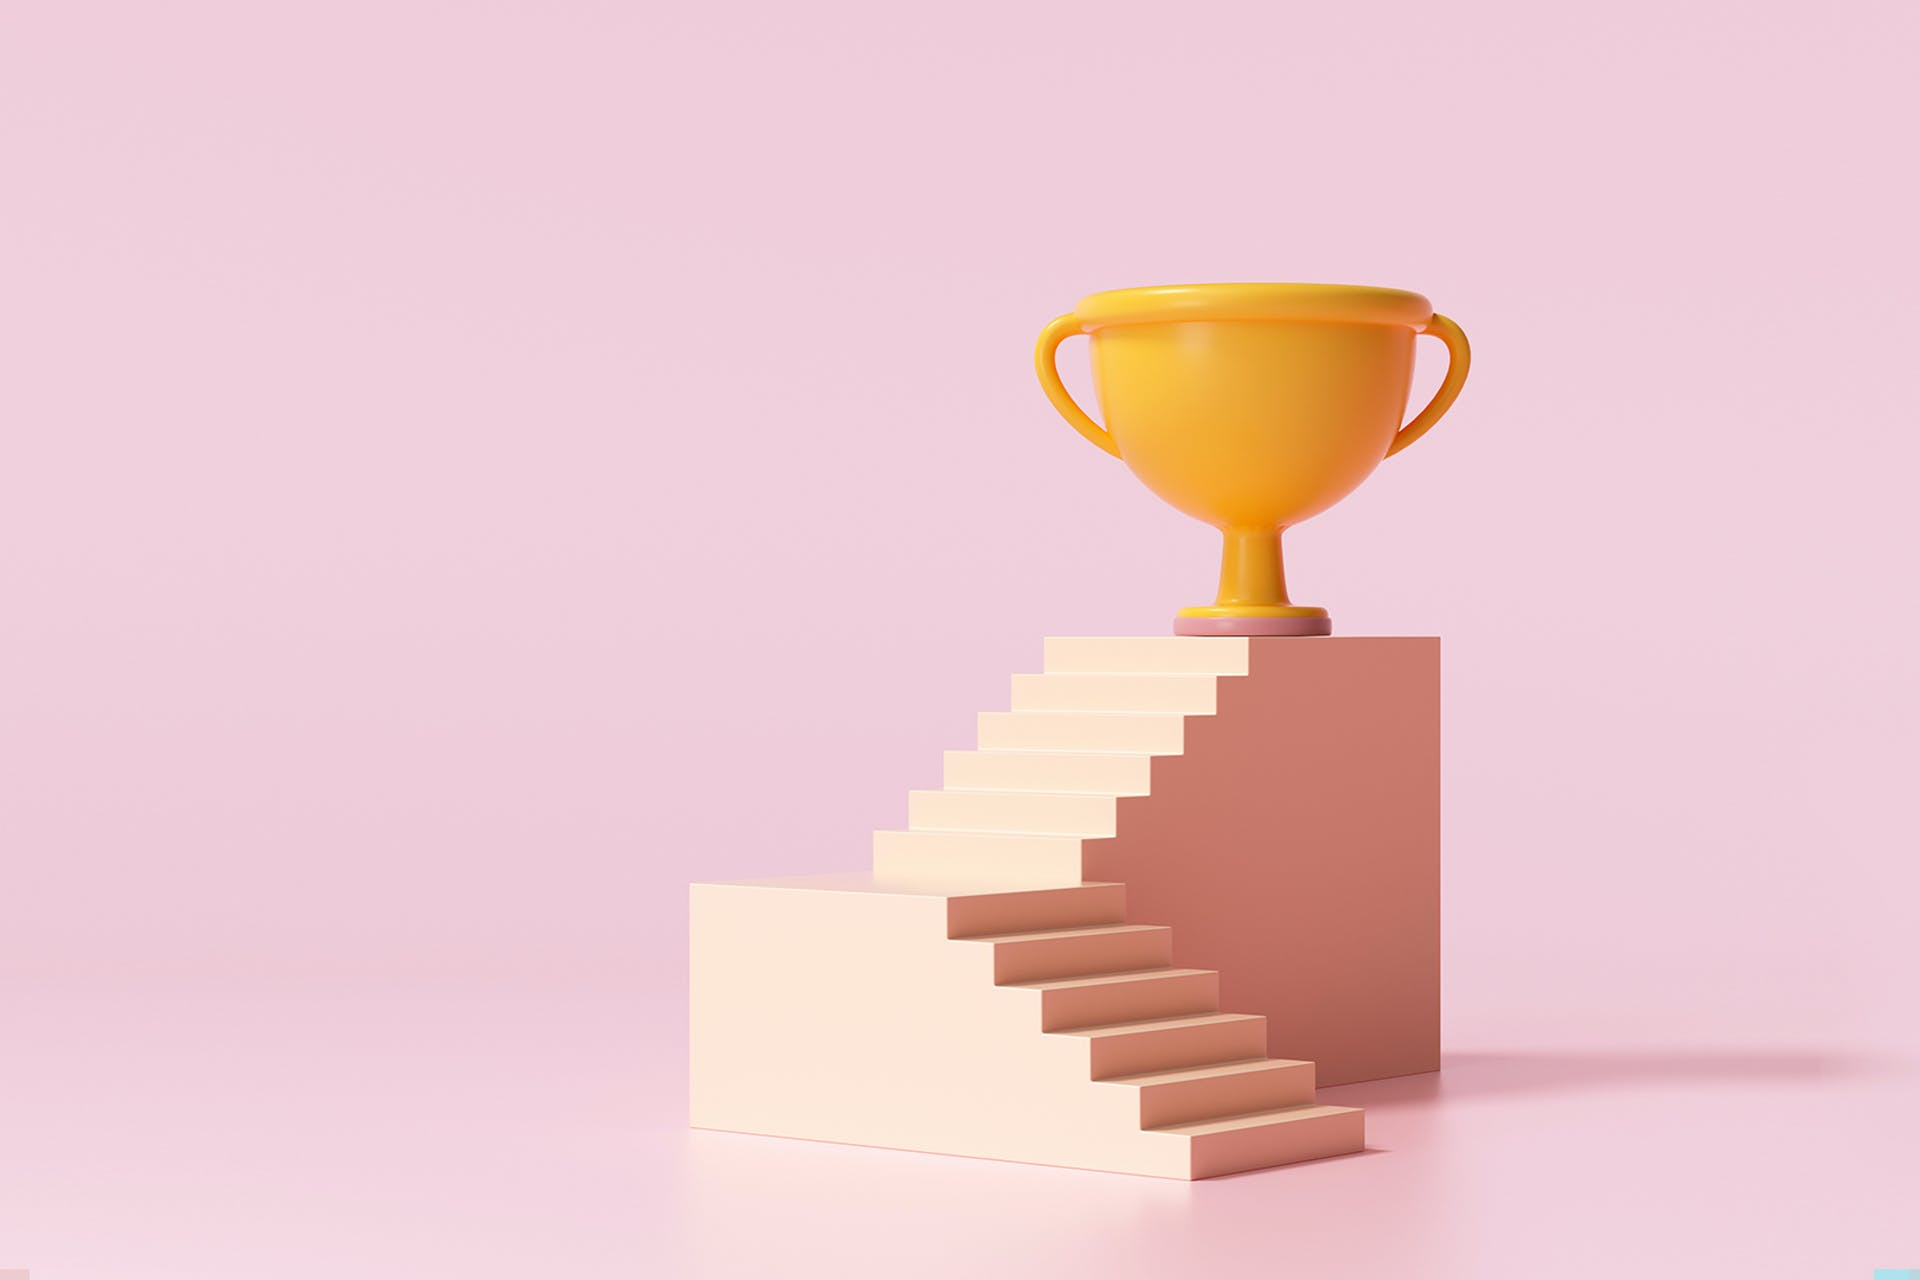 The path to social media management success involves several steps. In this blog post, we outline that process. This image depicts a series of steps with a gold trophy at the top.